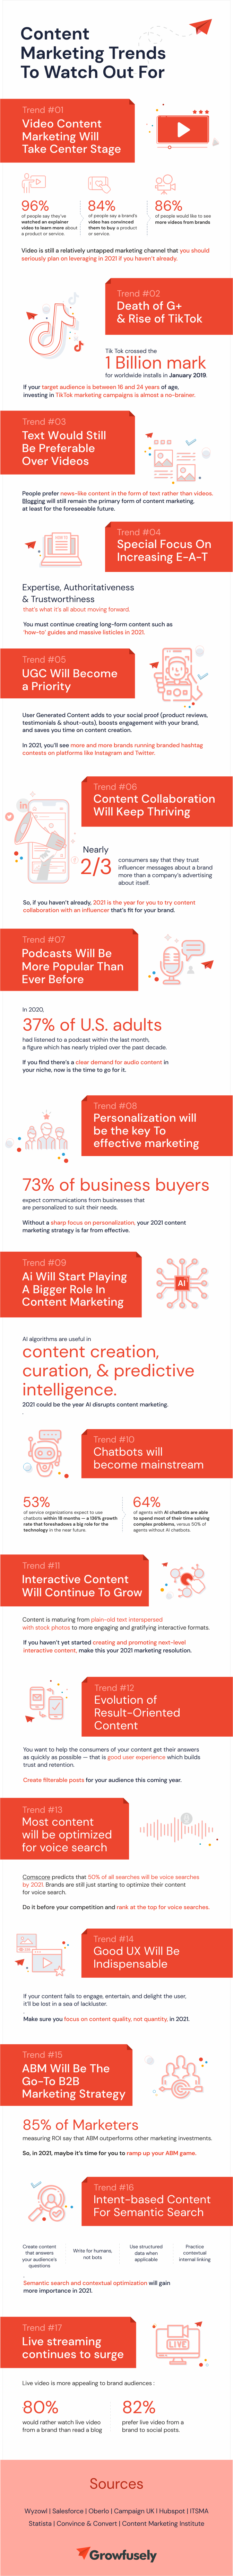 Content Marketing Trends - Growfusely